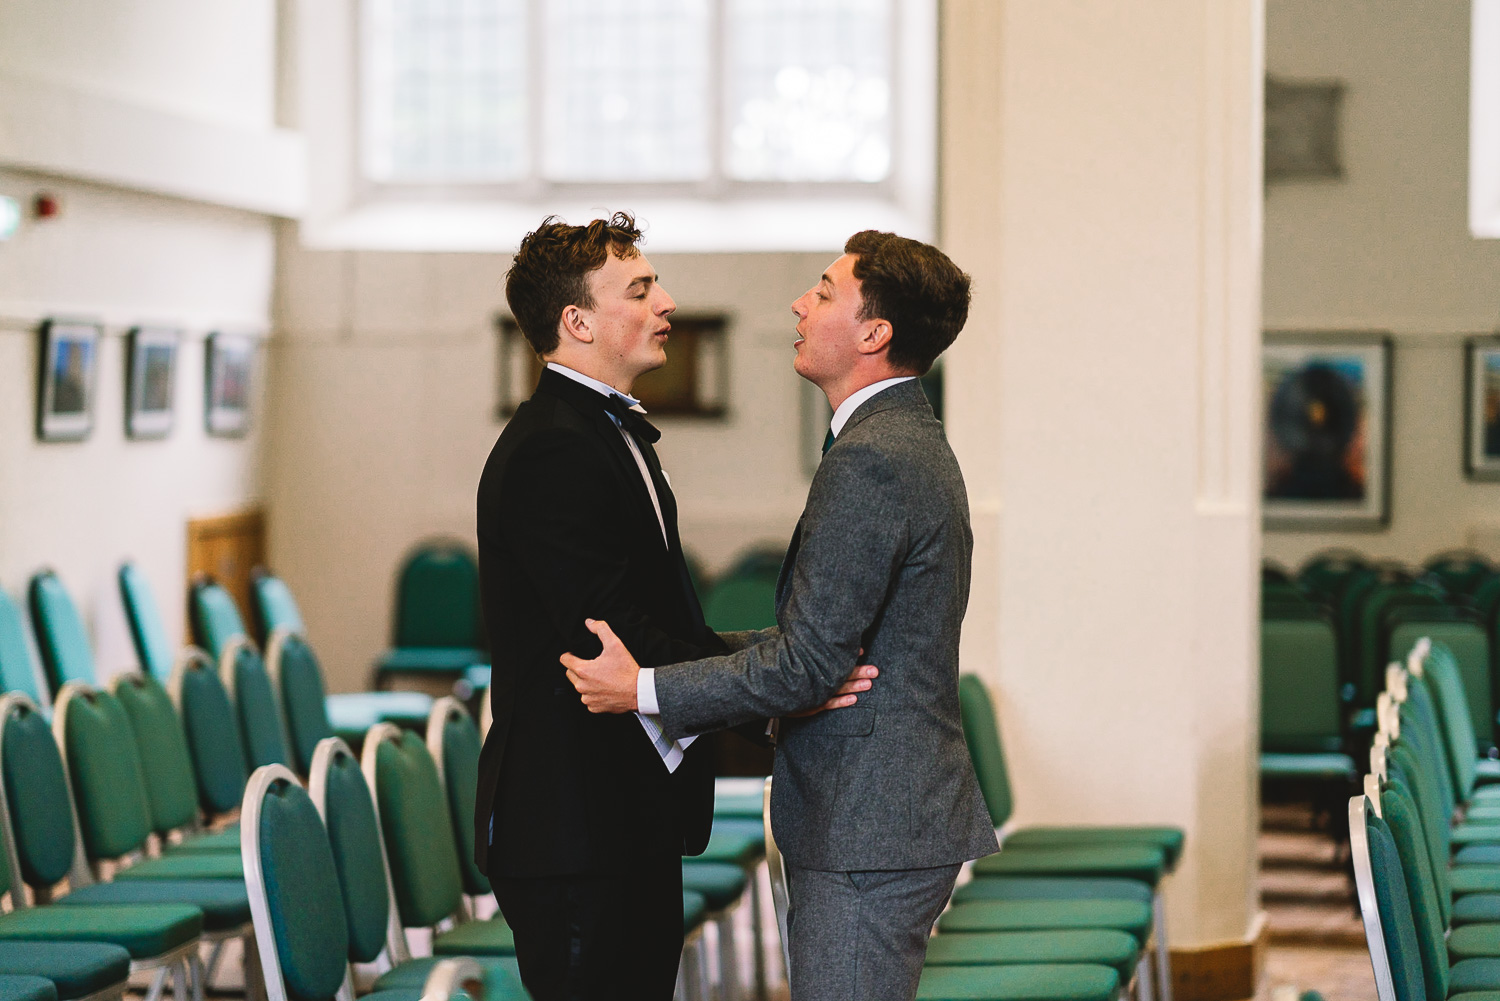 Photo inside of wedding venue of the Groom doing breathing exercises with one of his Groomsmen to calm the nerves before the wedding ceremony